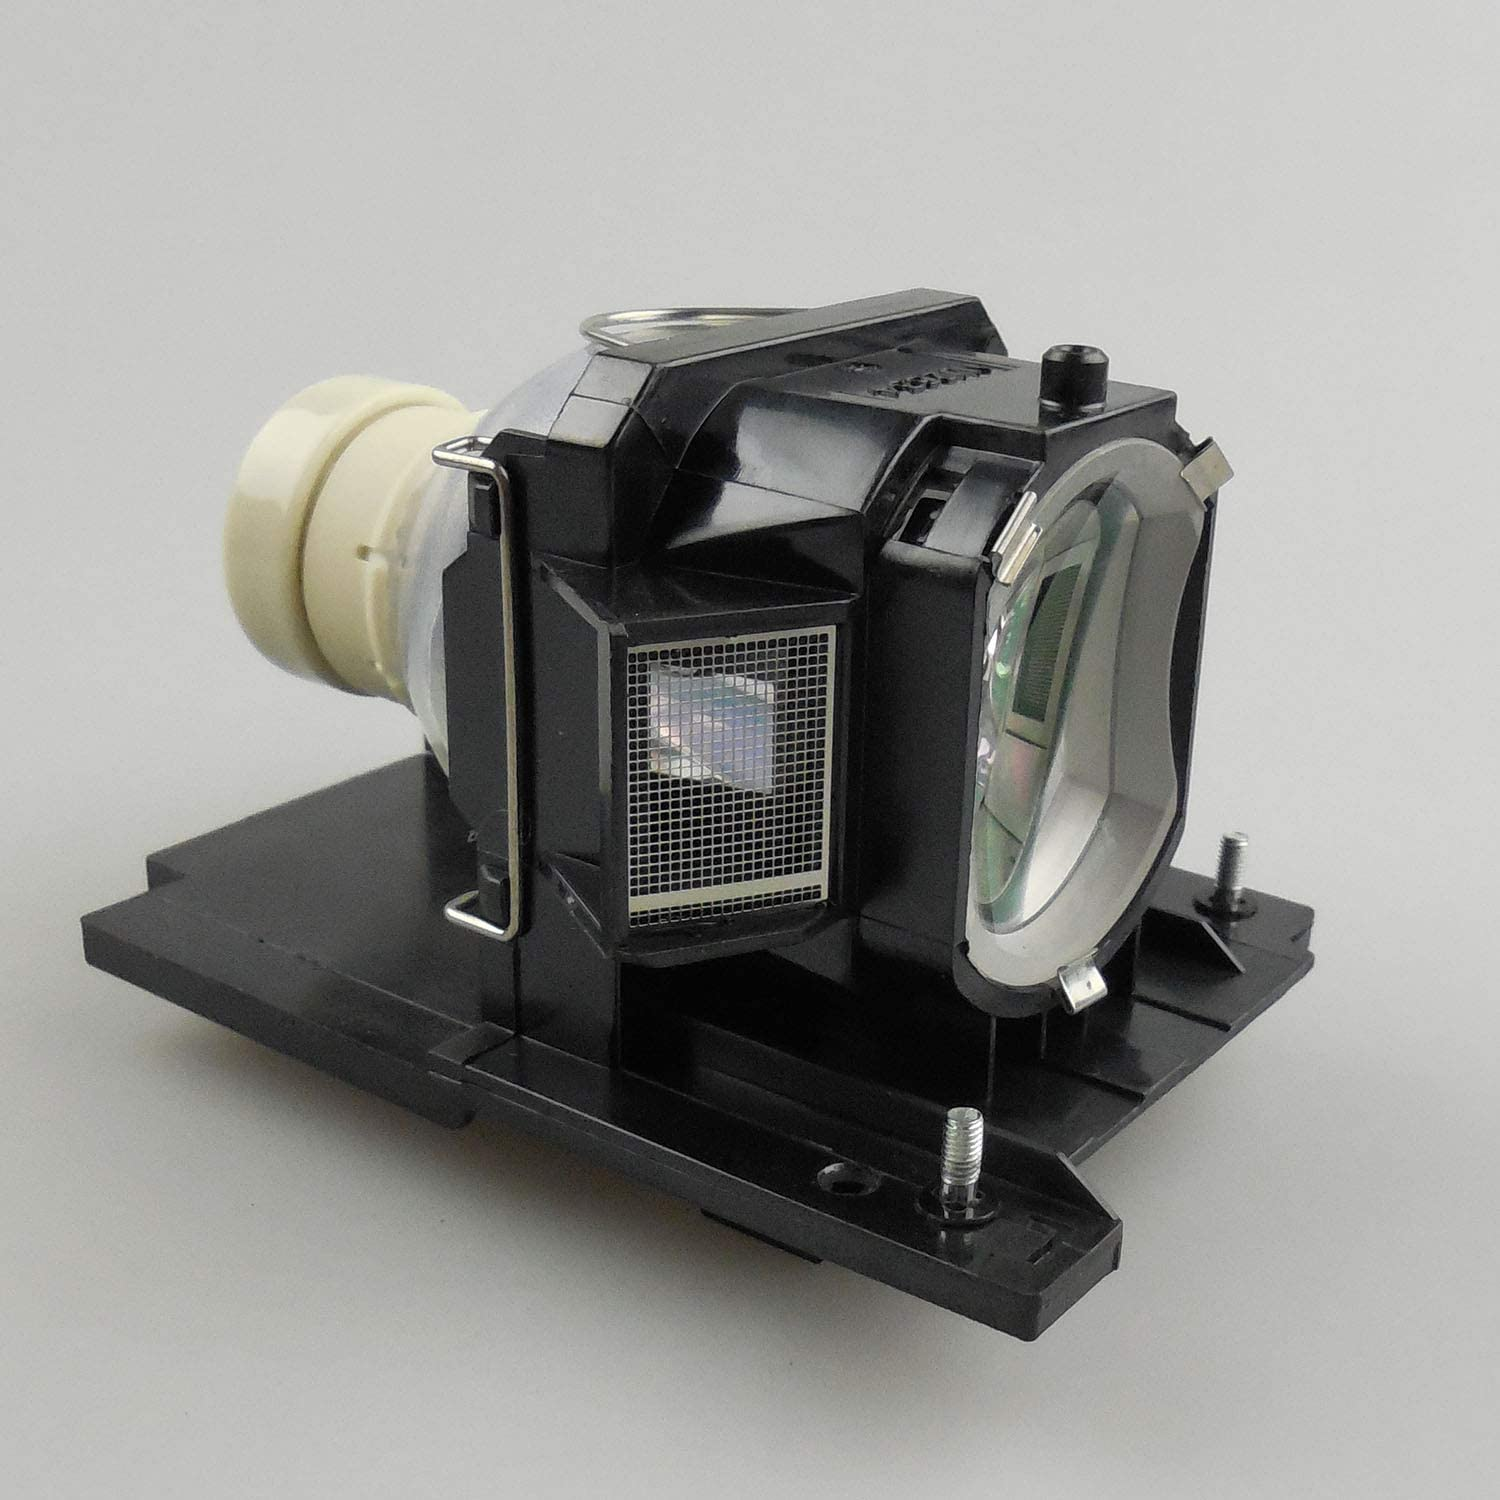 CTLAMP A+ Quality 78-6972-0008-3 / DT01021 / 456-8755J Replacement Projector Lamp with Housing Compatible with HITACHI CP-X2010 CP-X2510 CP-X2010N CP-X2011 CP-X2011N CP-X2510N CP-X2510EN CP-X2511 CP-X2511N CP-X2514WN CP-X3010